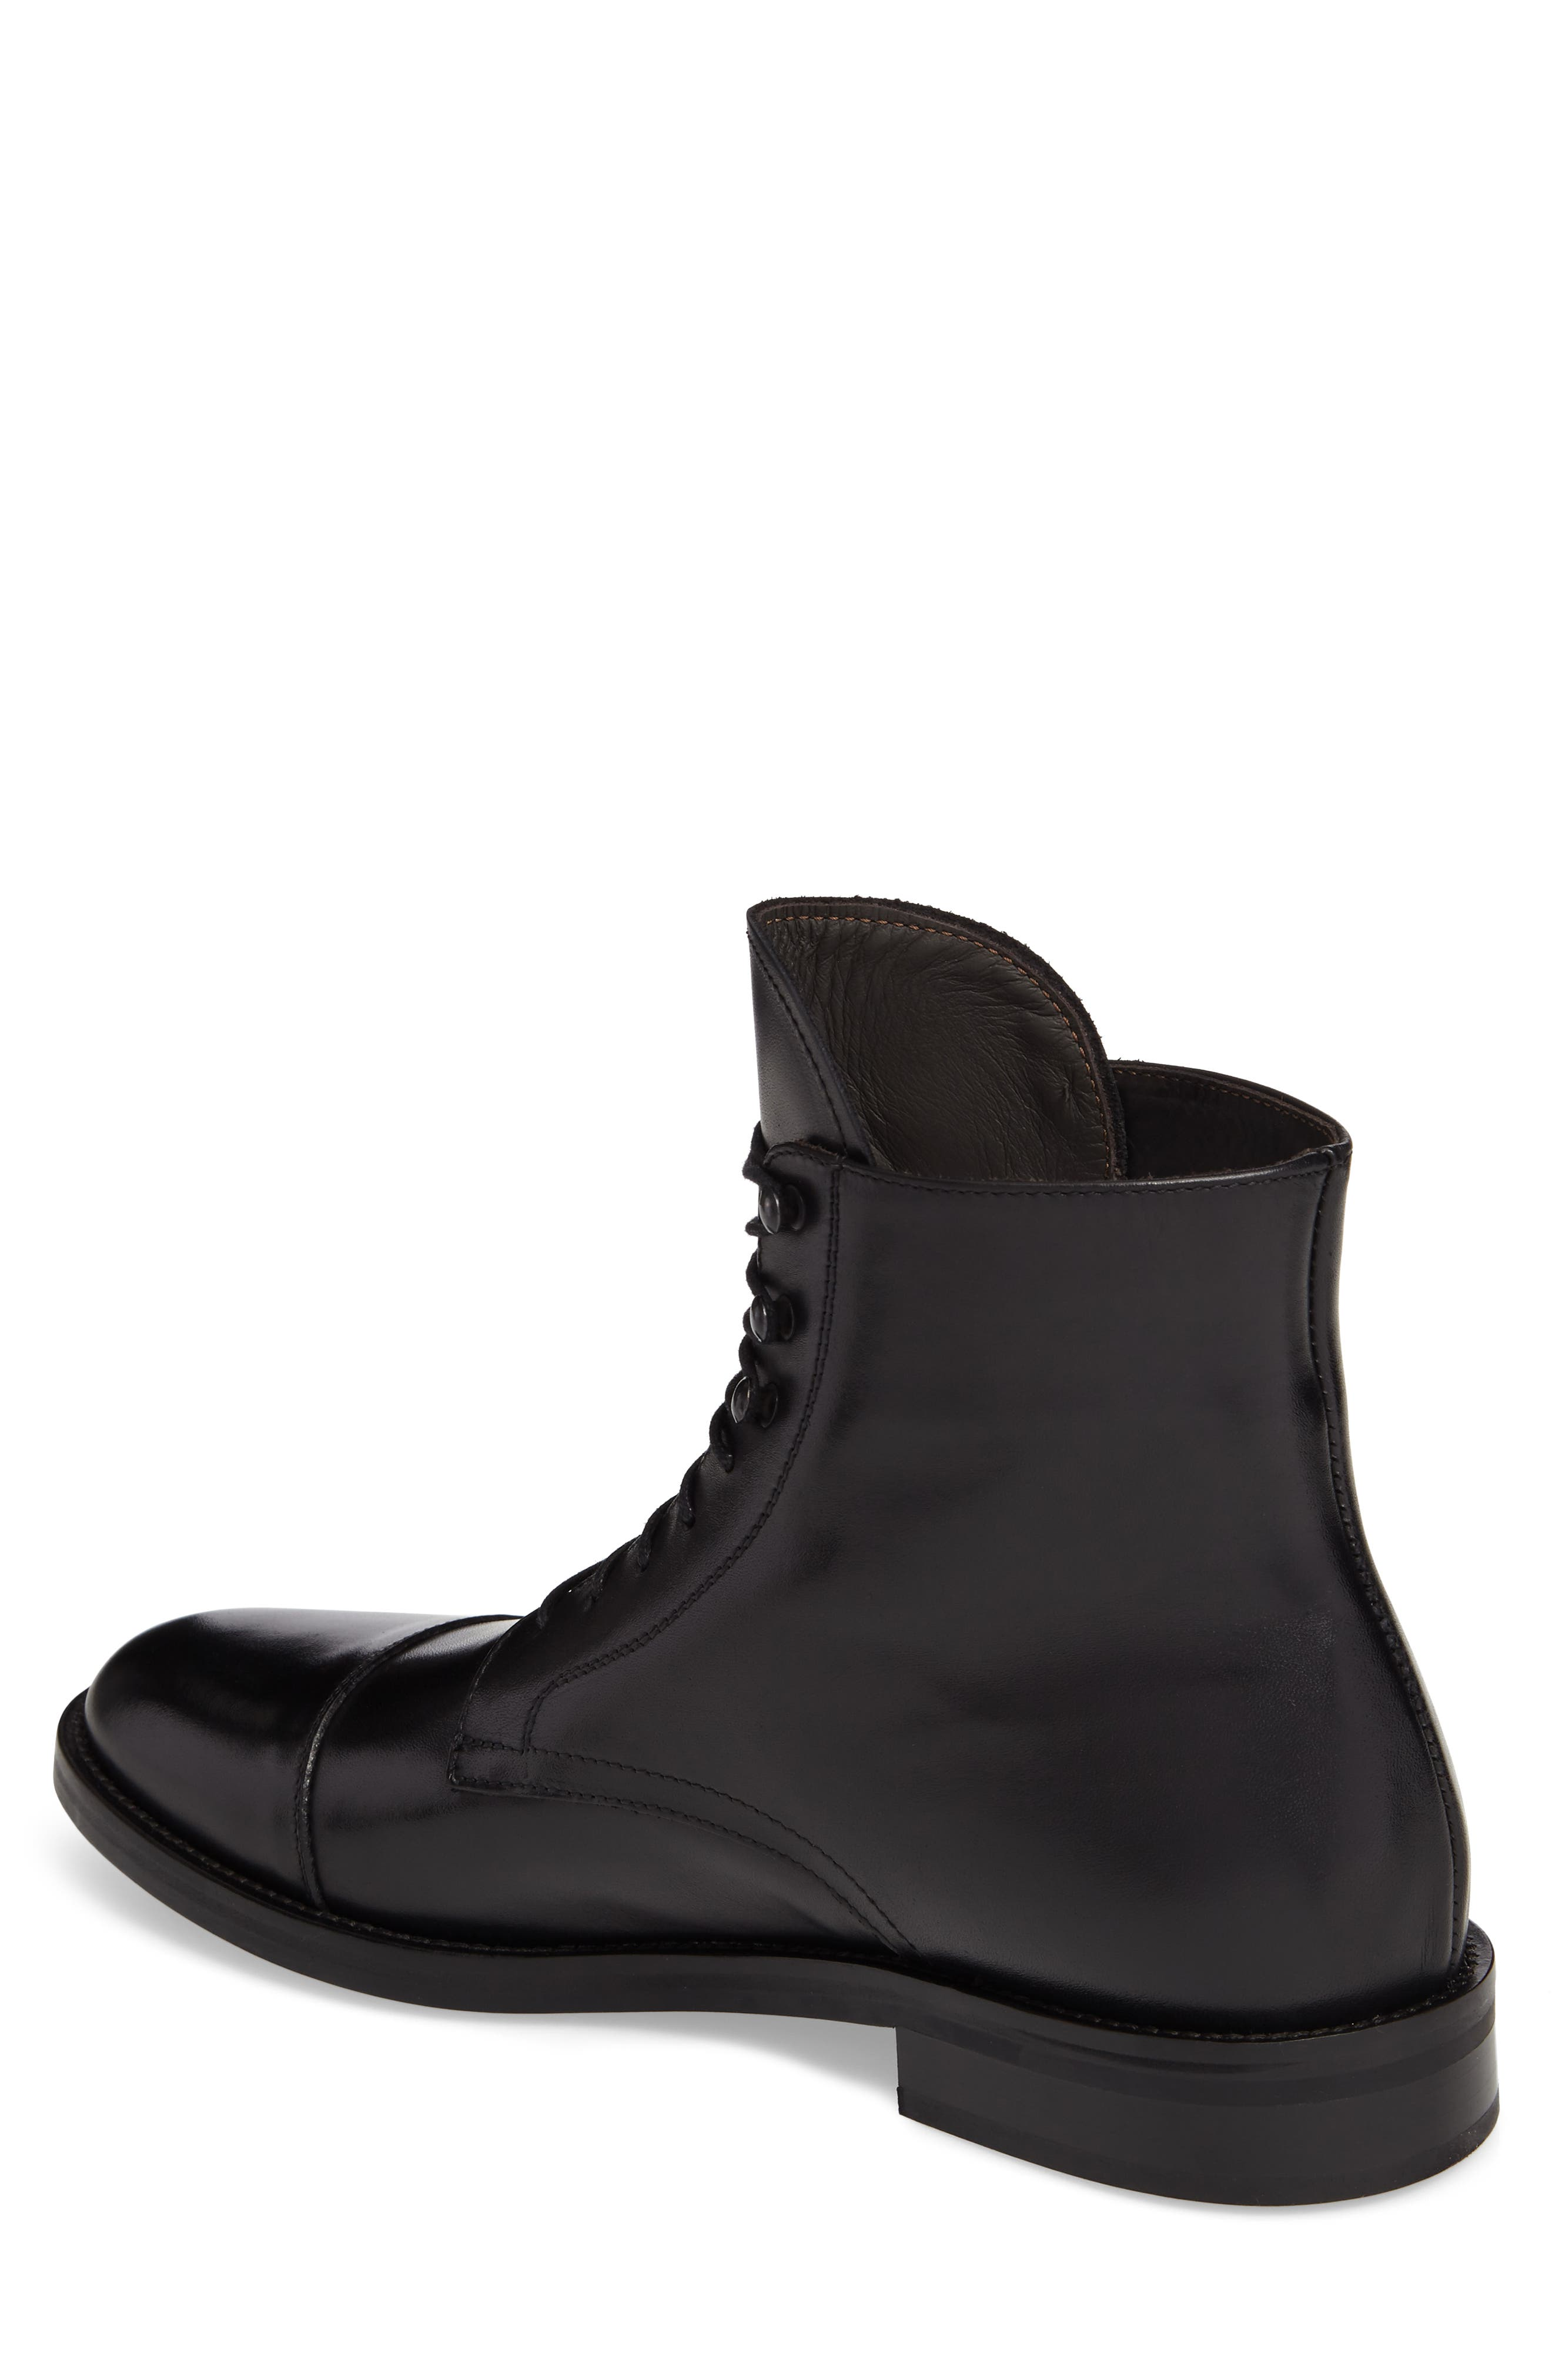 Henri Cap Toe Boot,                             Alternate thumbnail 2, color,                             BLACK